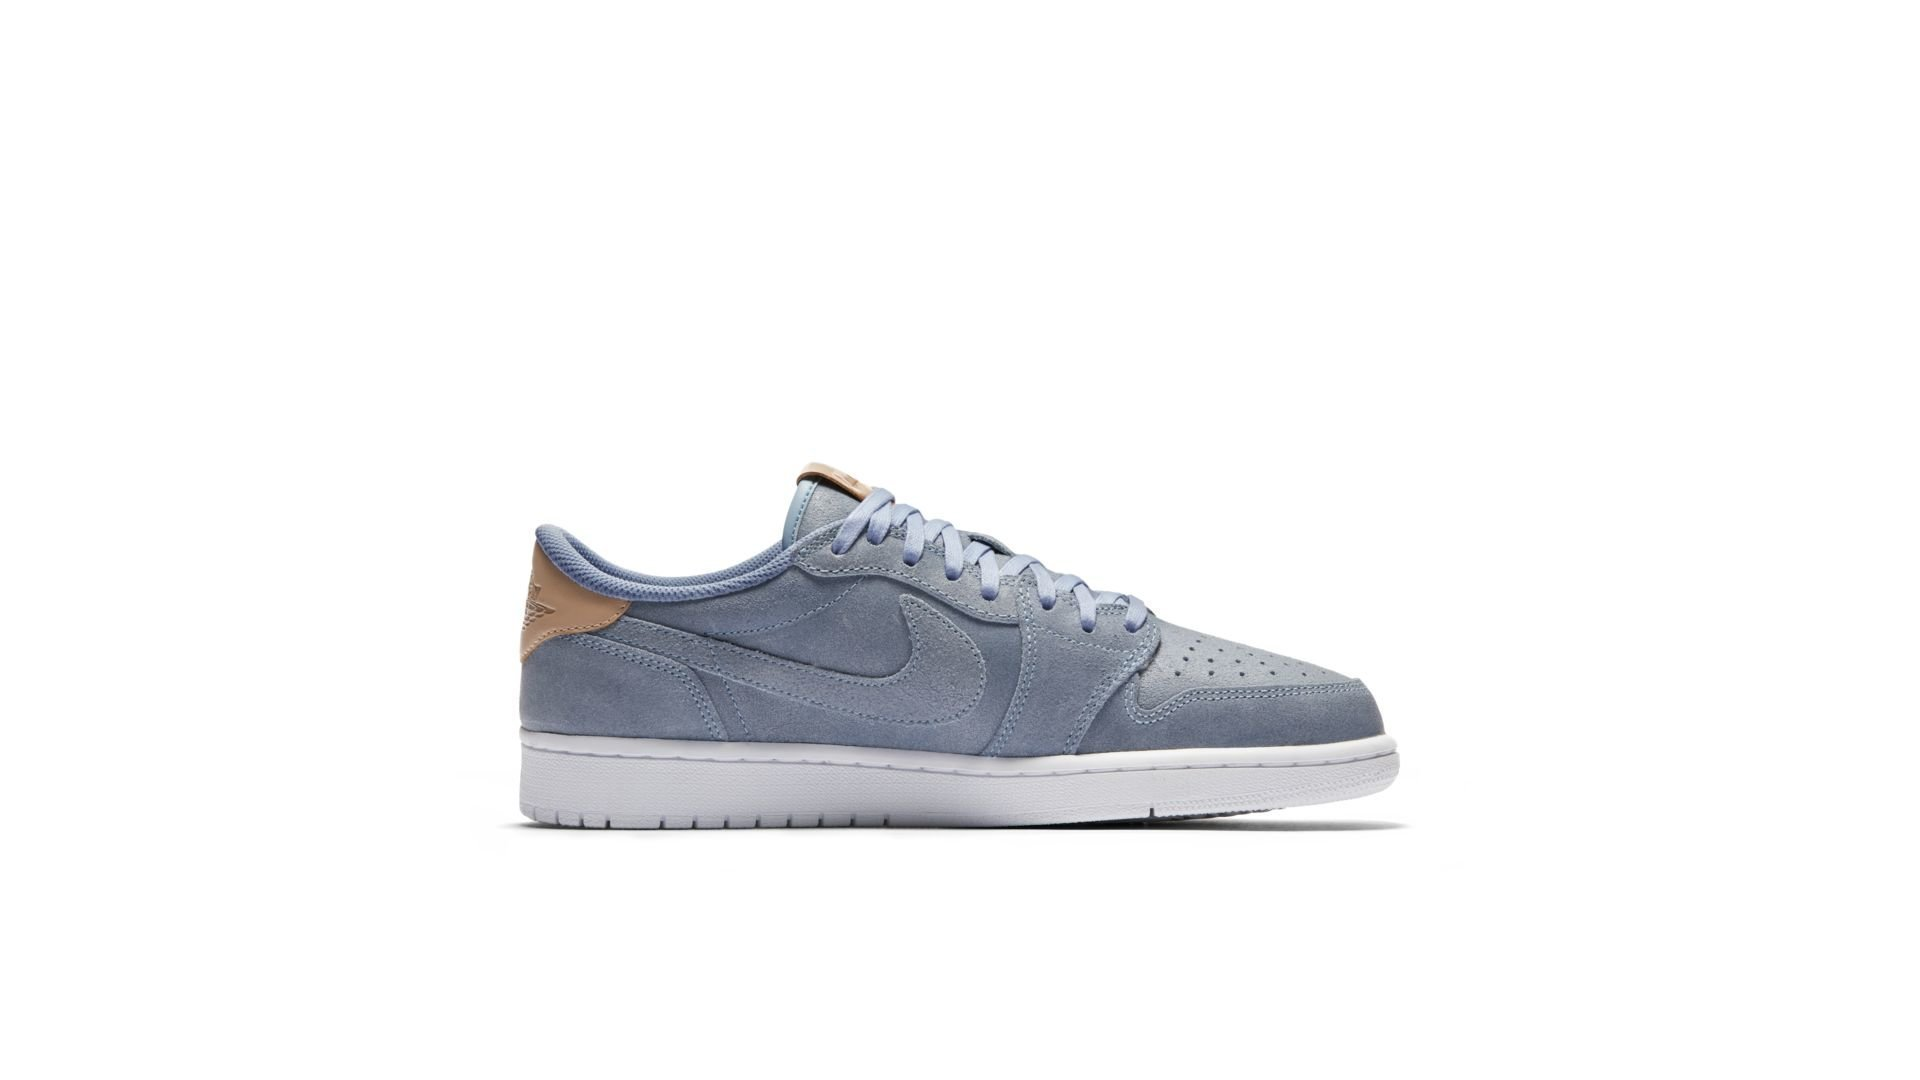 Jordan 1 Retro Low OG Ice Blue (905136-402)